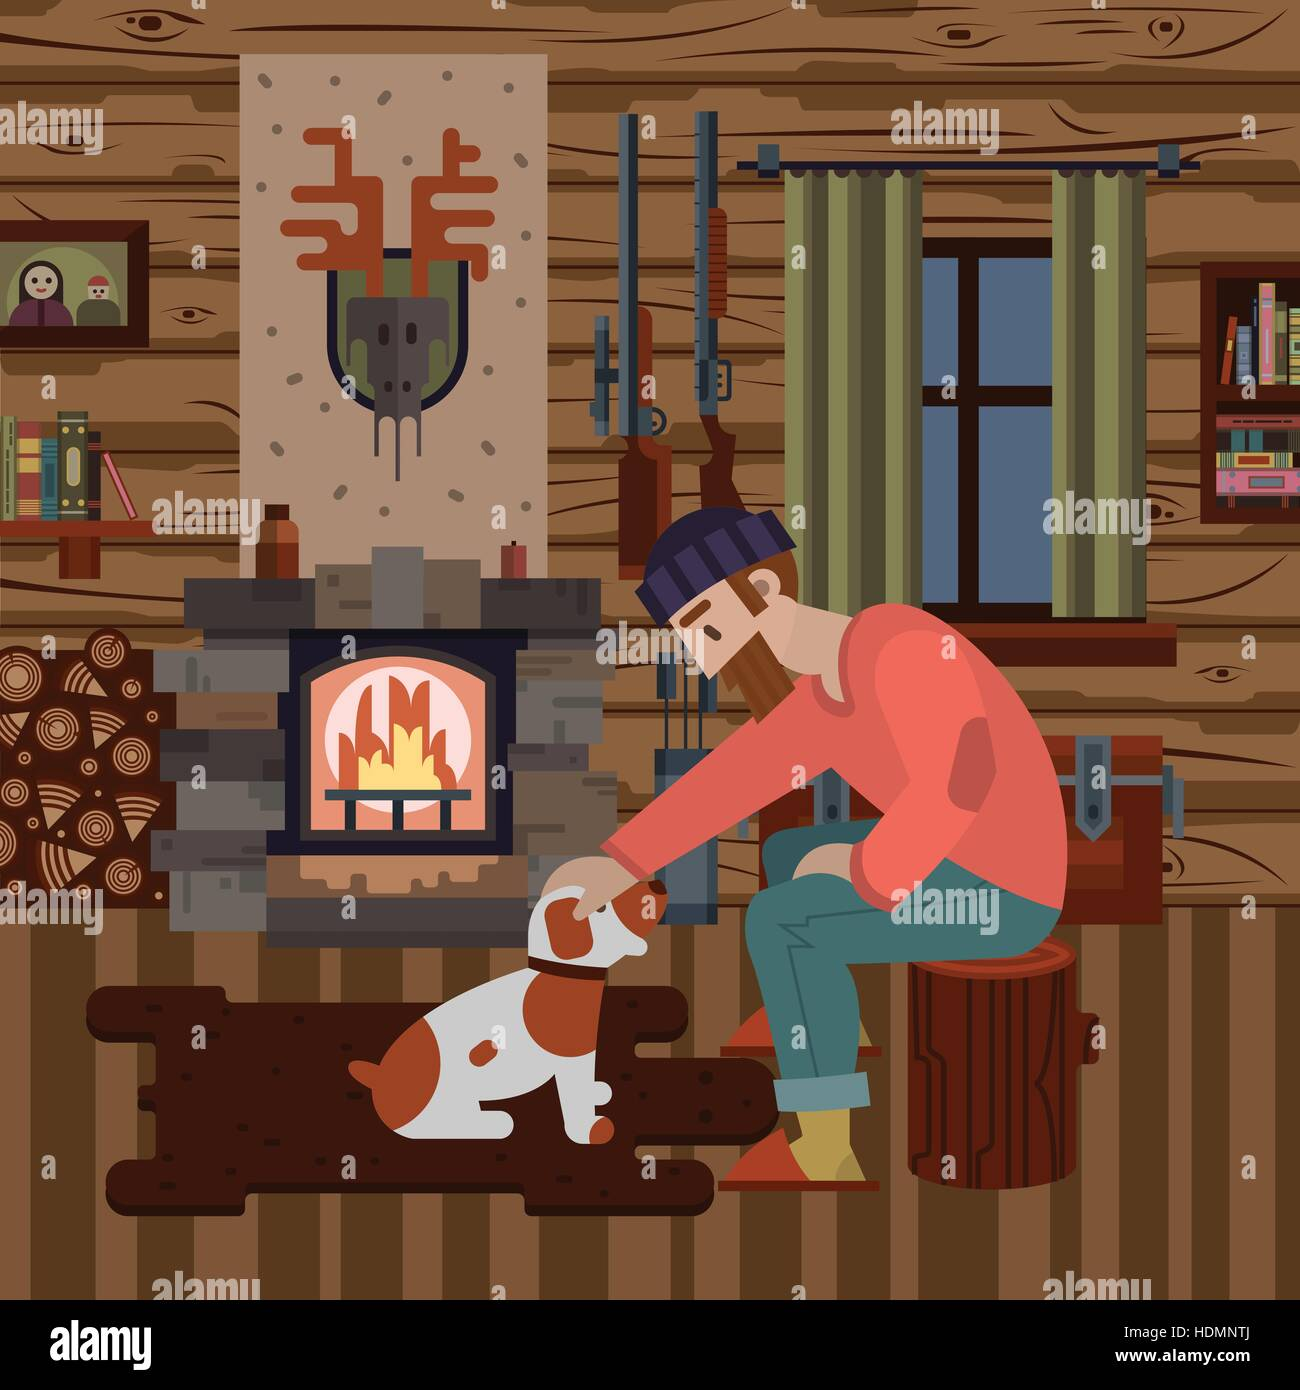 Cozy interior of hunter wood house with different items: logs, guns, fireplace. Hunter with dog. Modern flat style - Stock Vector